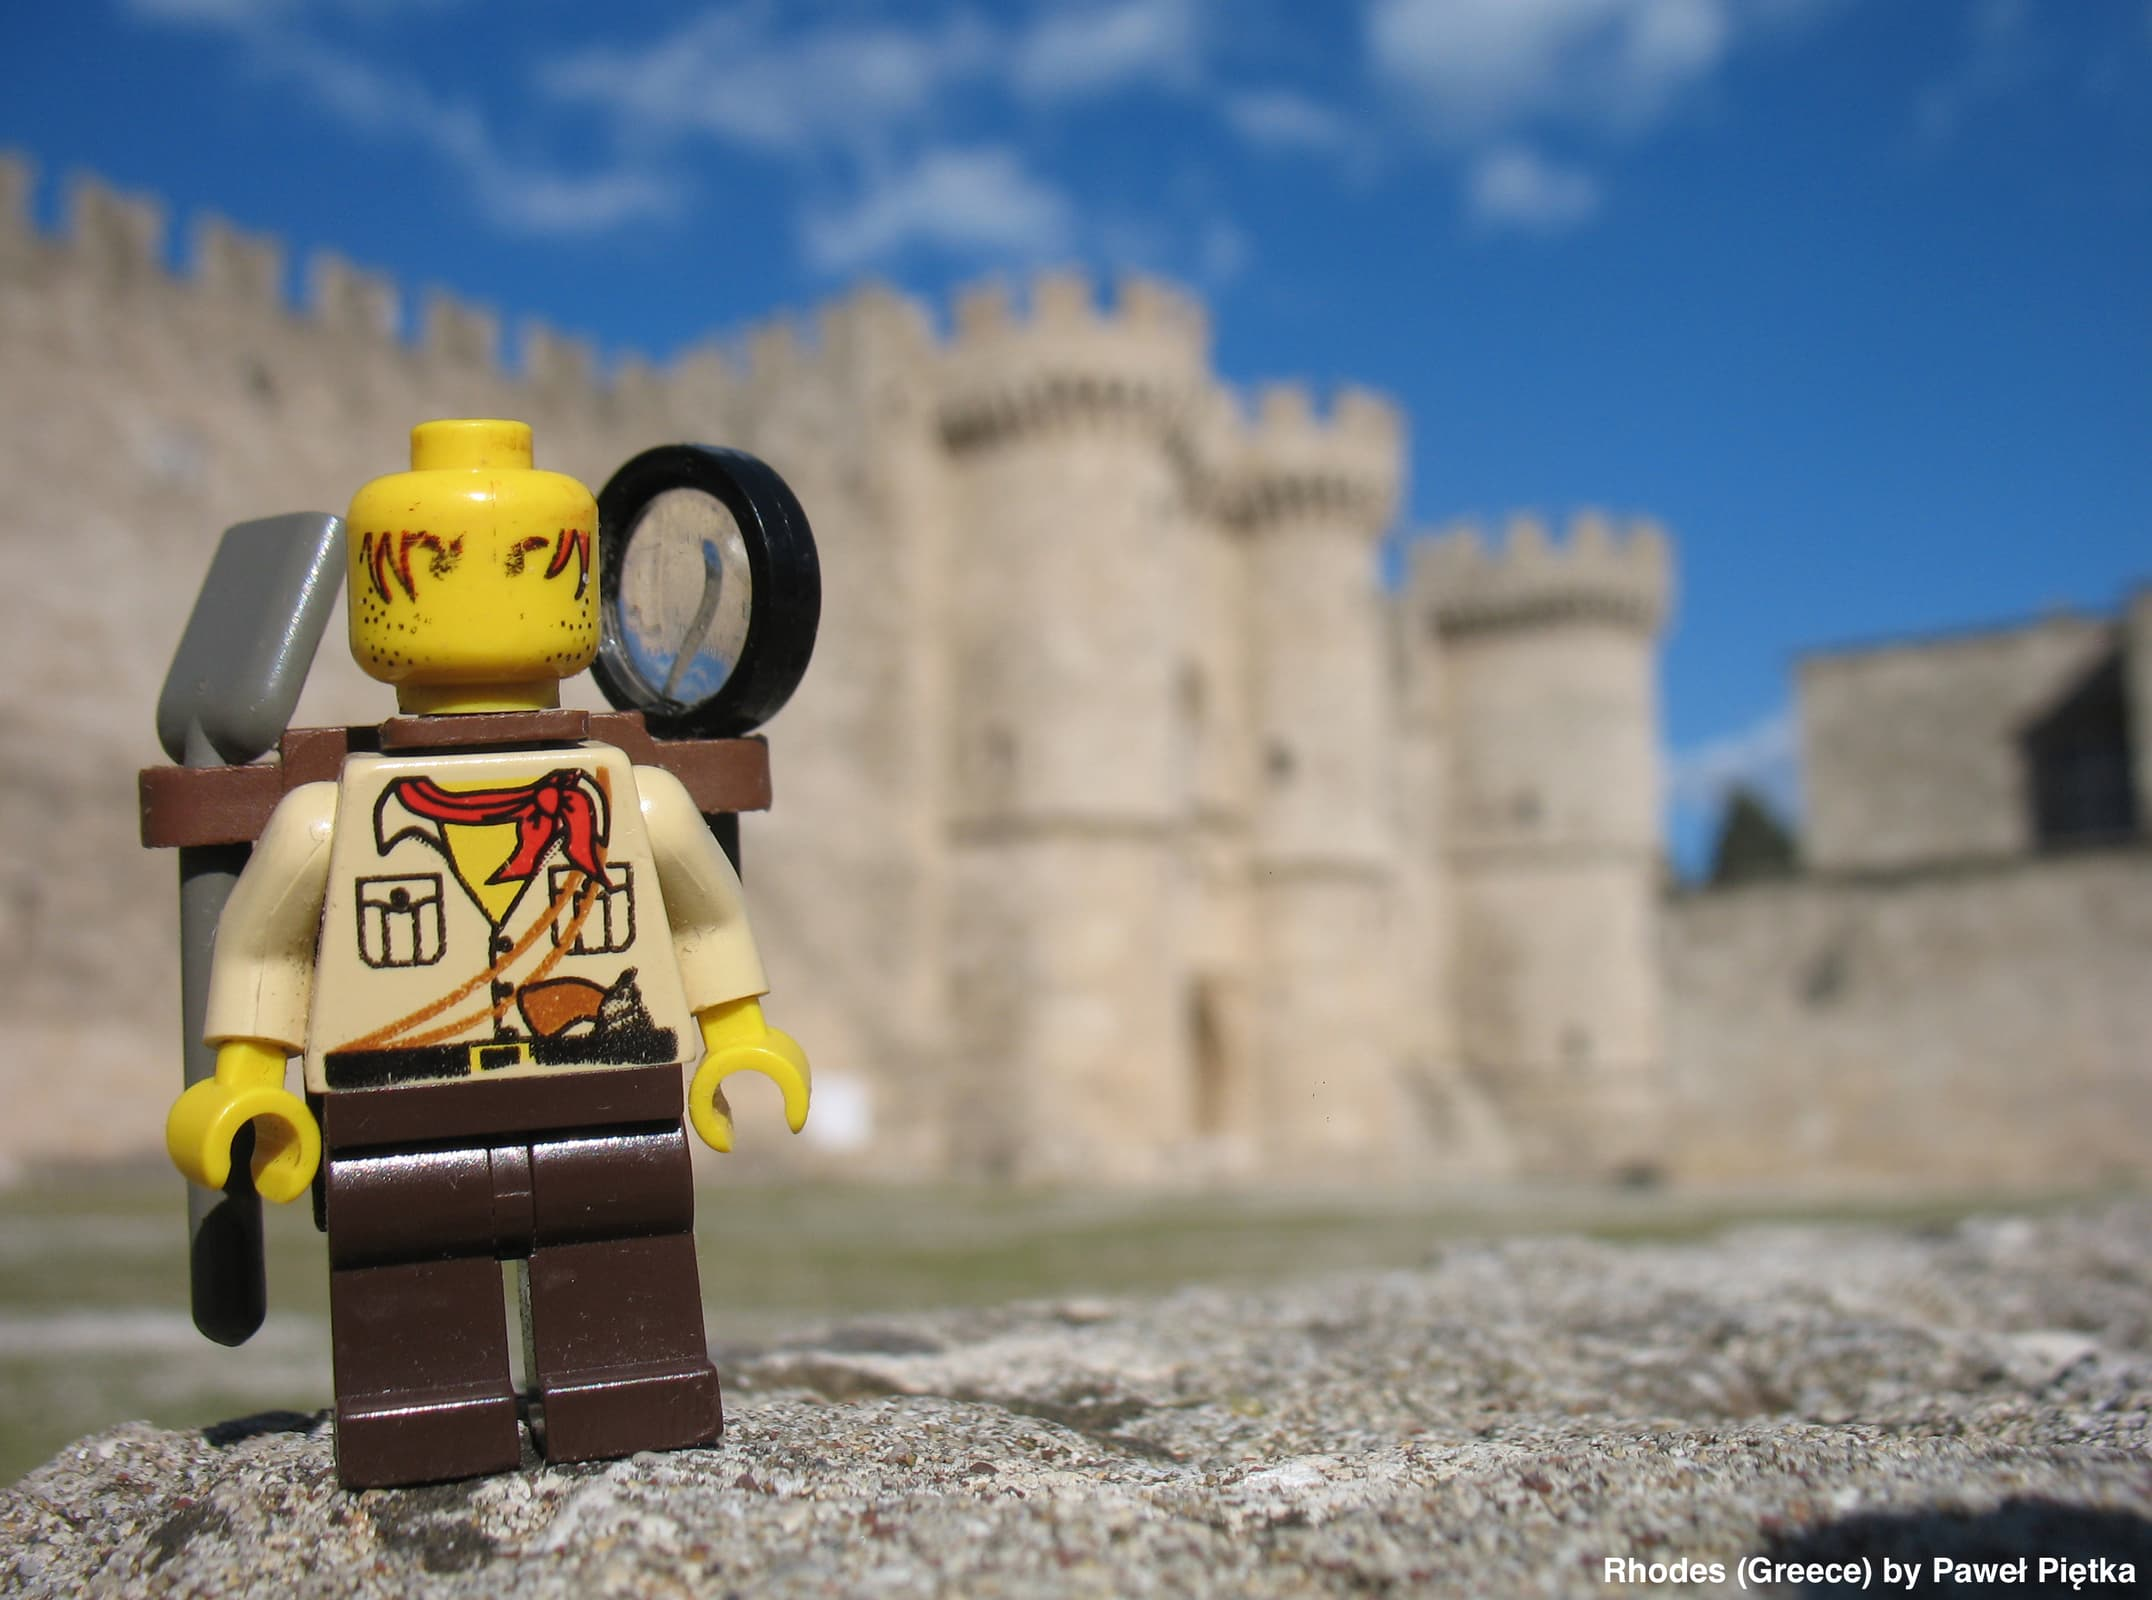 Rhodes (Greece) - Palace of the Grand Master of the Knights of Rhodes